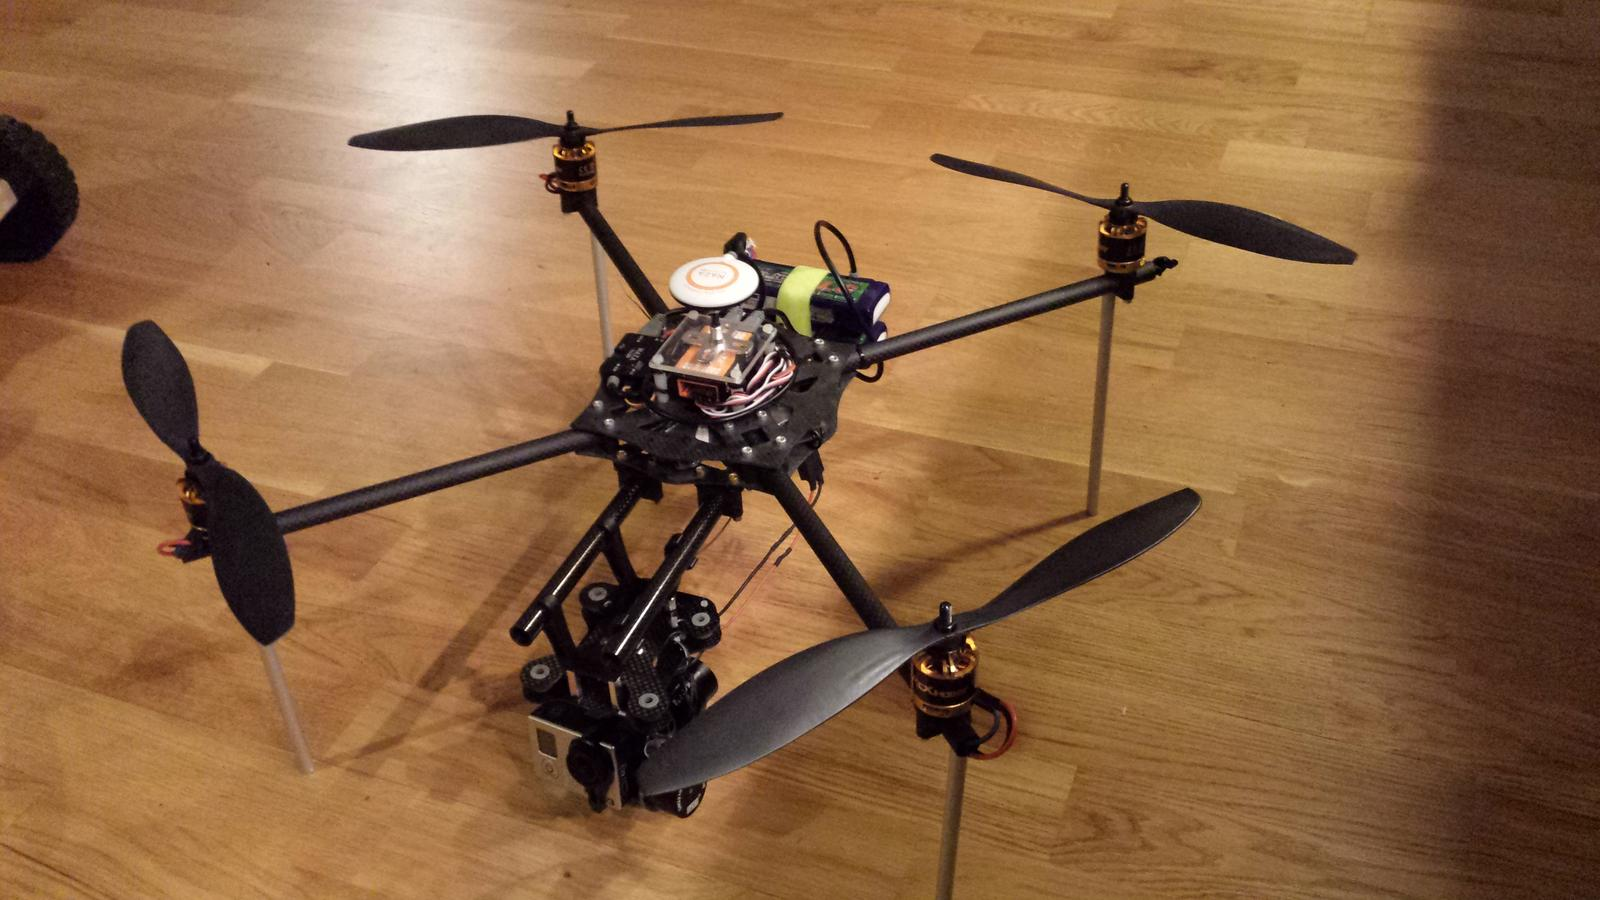 Discussion DJI Flame Wheel F450 and F550 *******OWNERS